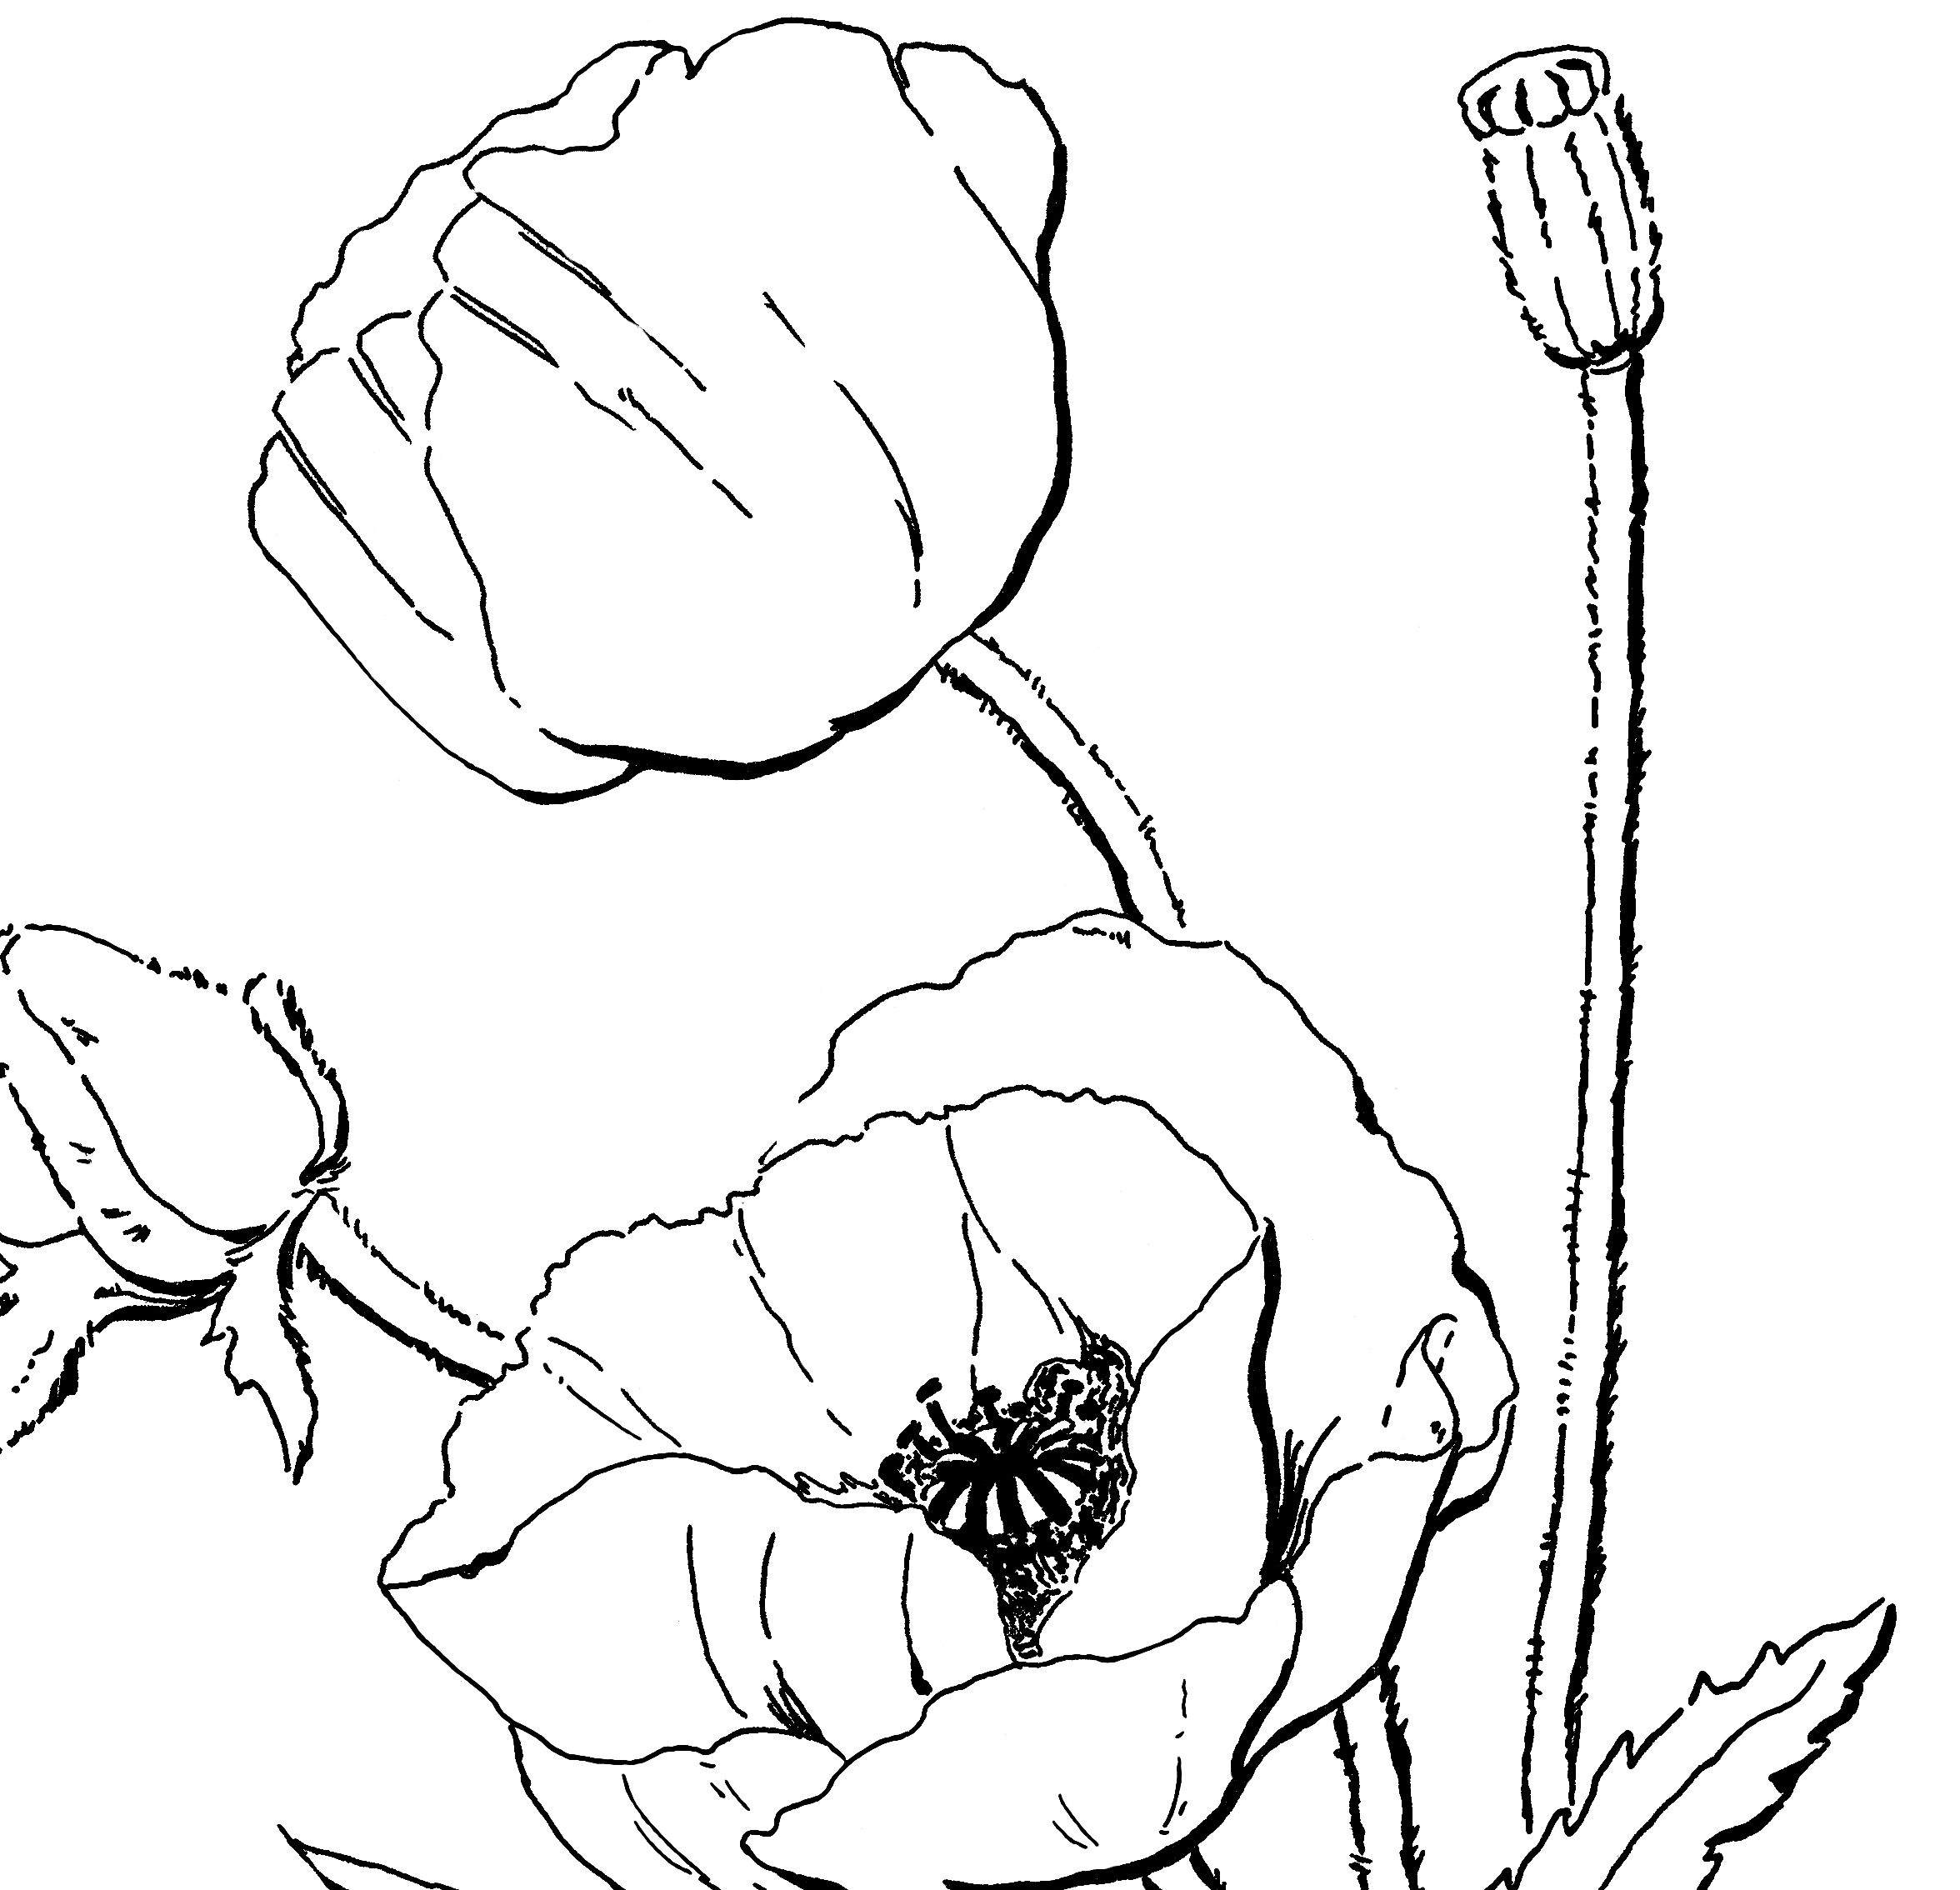 poppy coloring page for adults vintage coloring bookspoppy flowersglass - Poppy Flower Coloring Pages